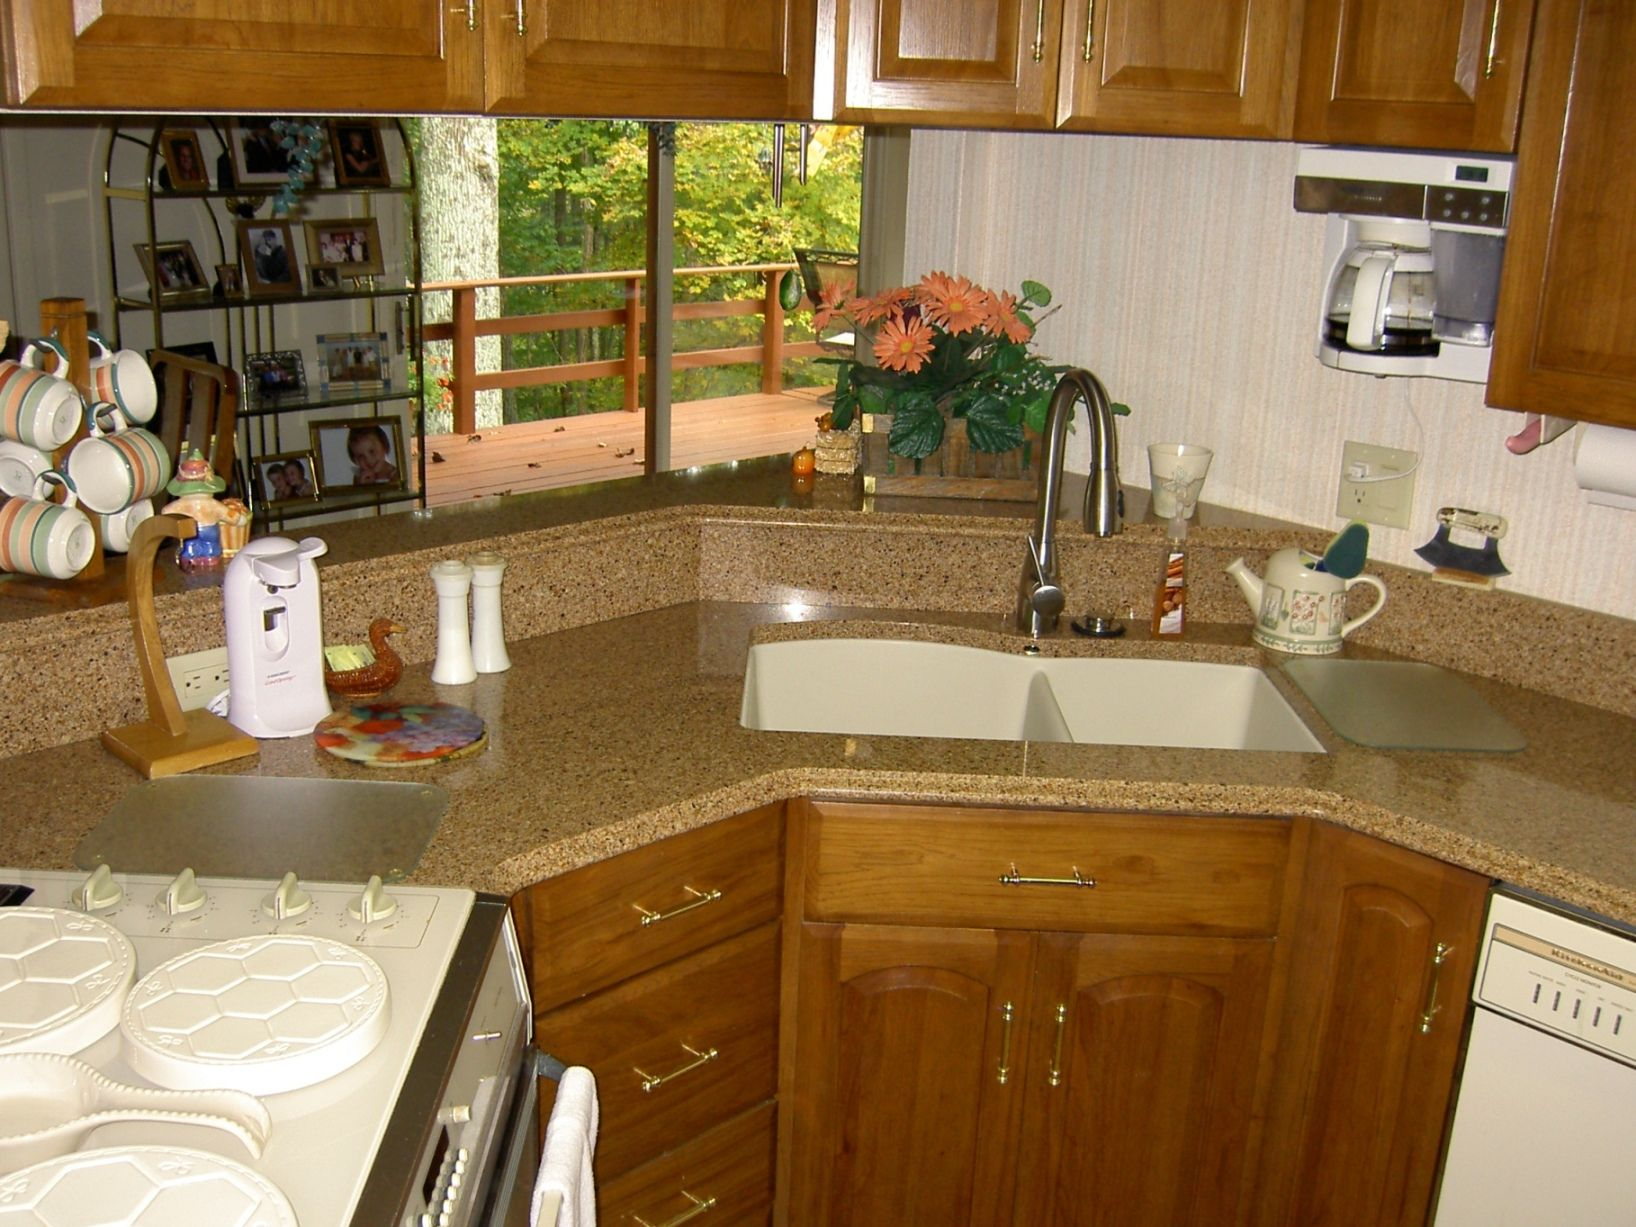 Kitchenquartz Countertops With Oak Cabinets Quartz Countertops With